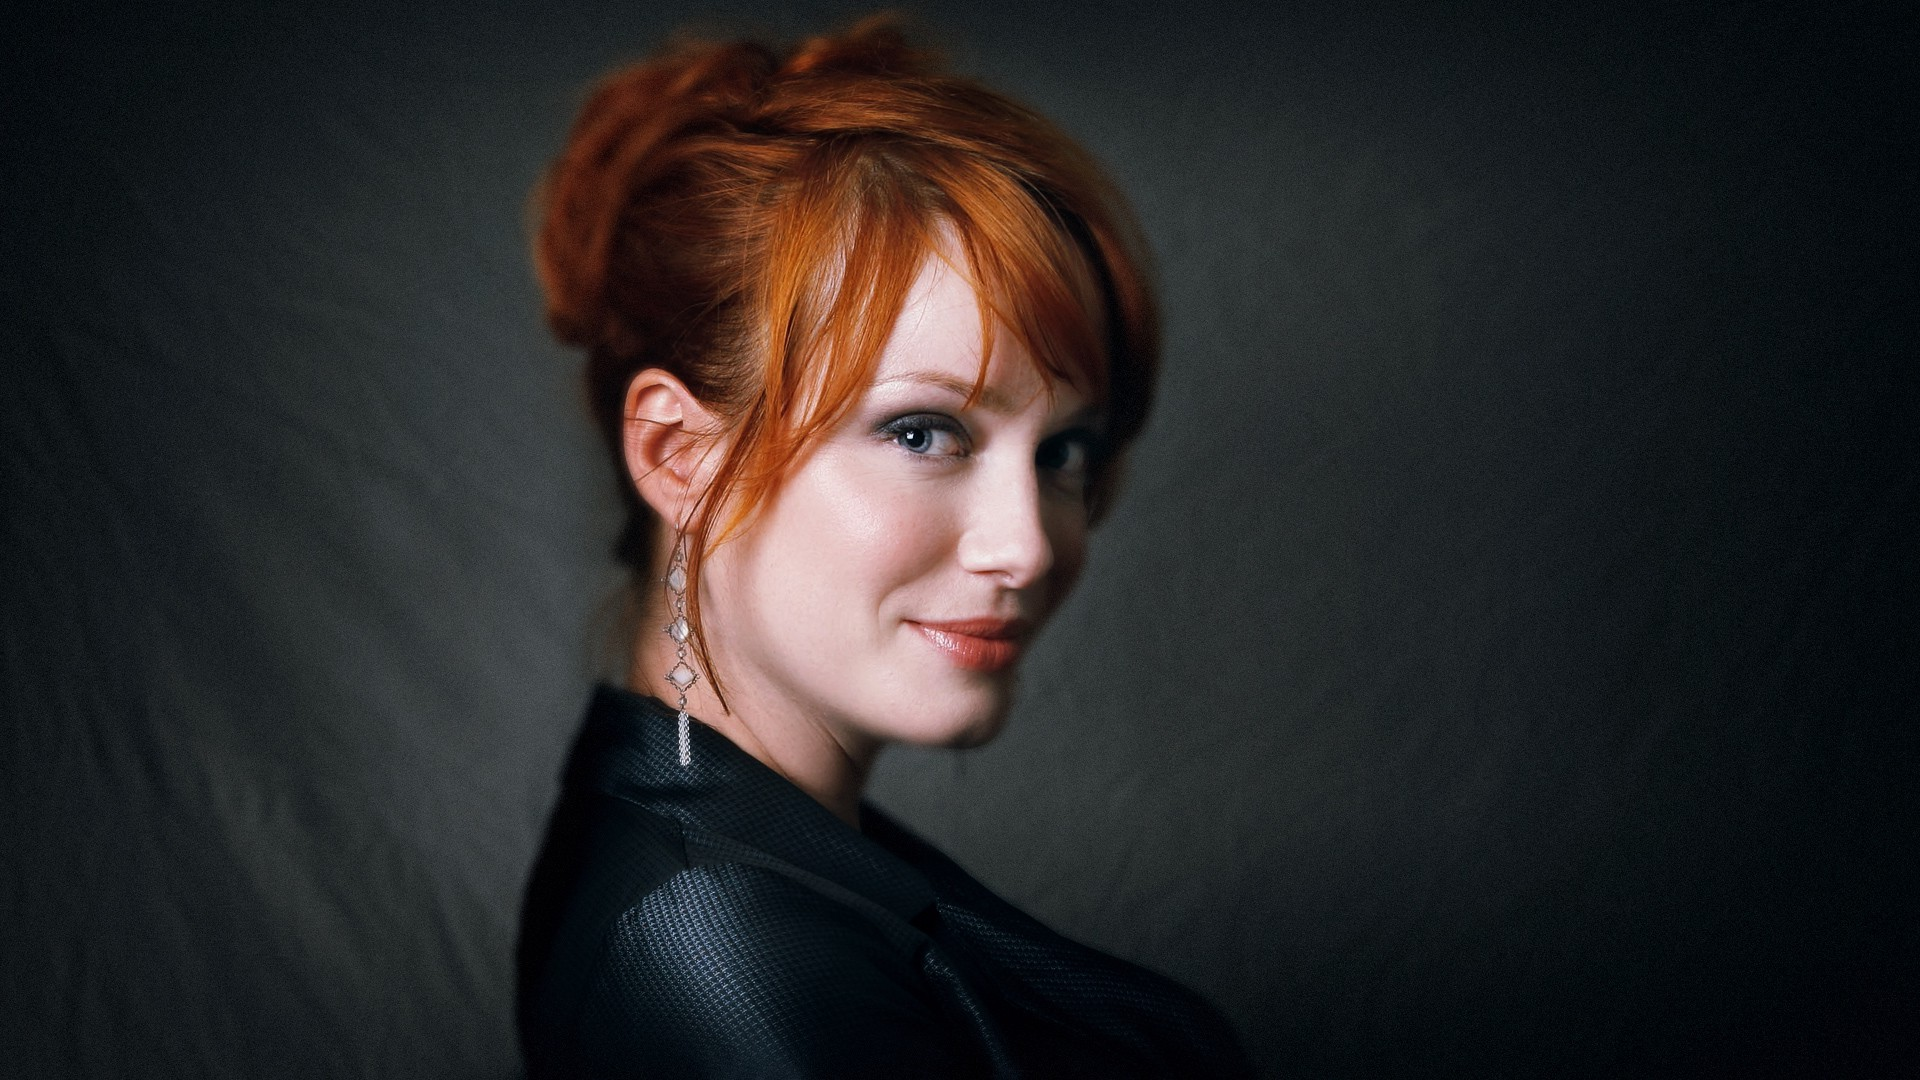 Christina Hendricks Wallpapers Pictures Images 1920x1080